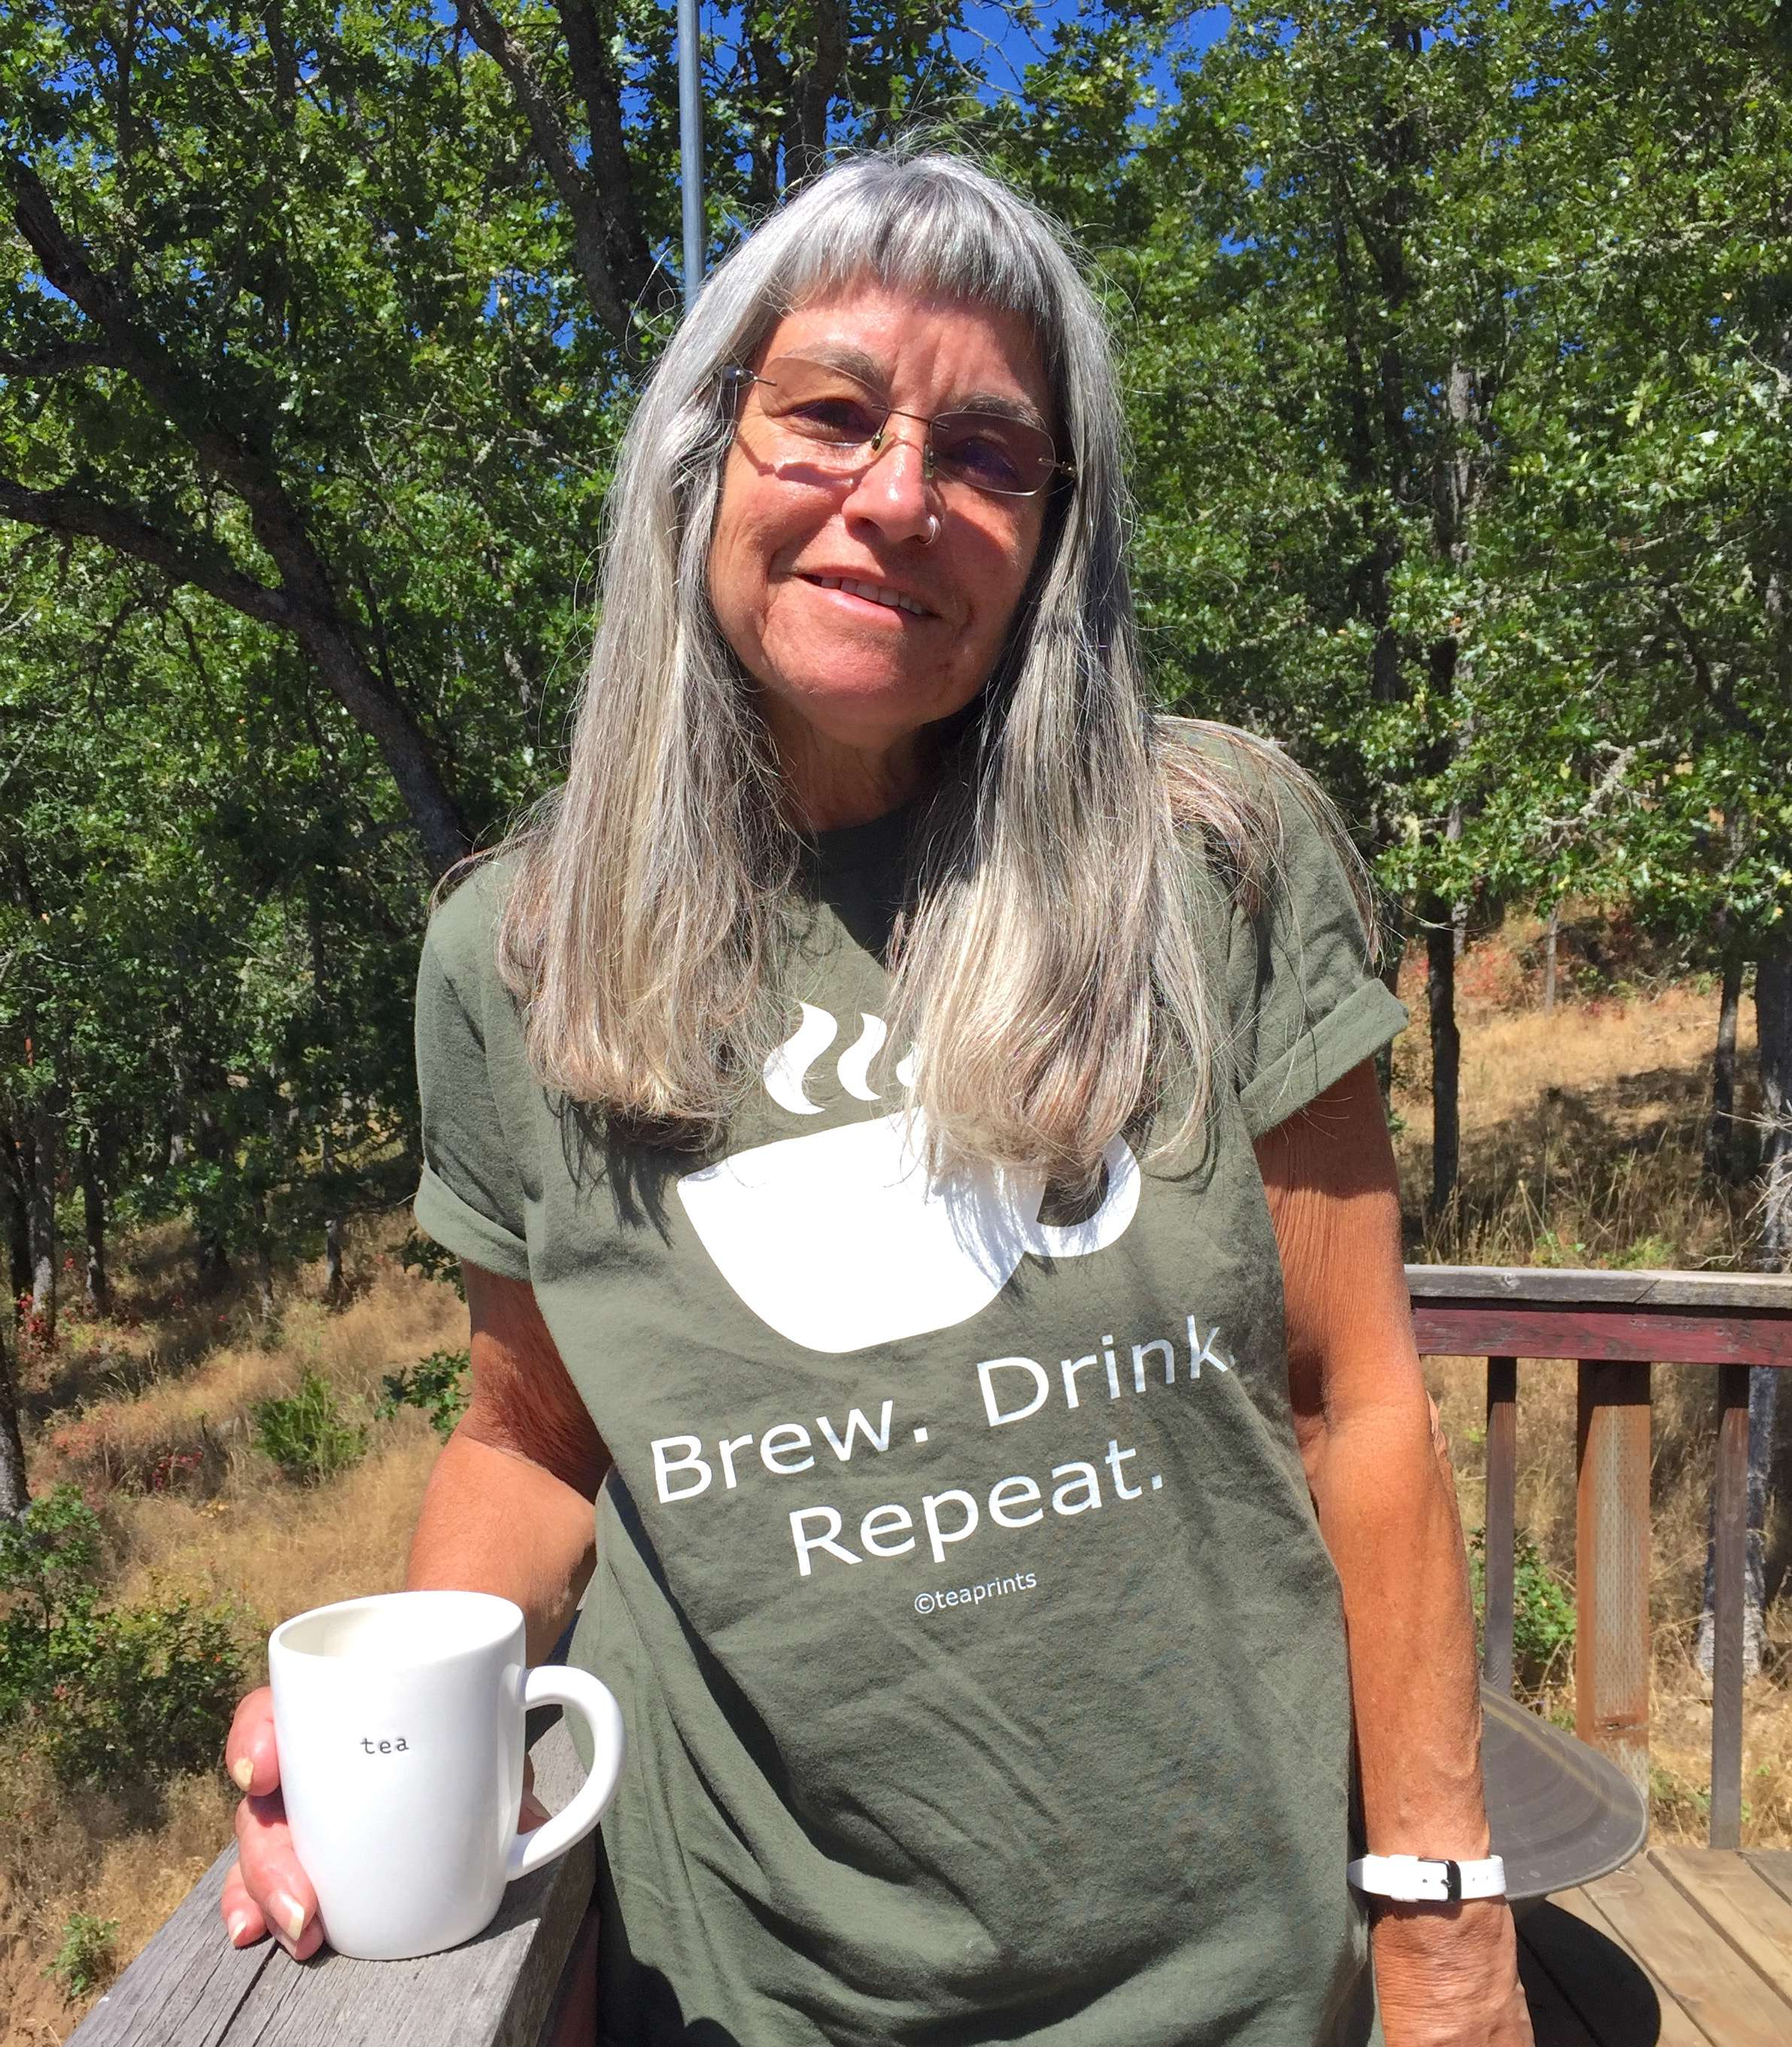 Brew, Drink, Repeat